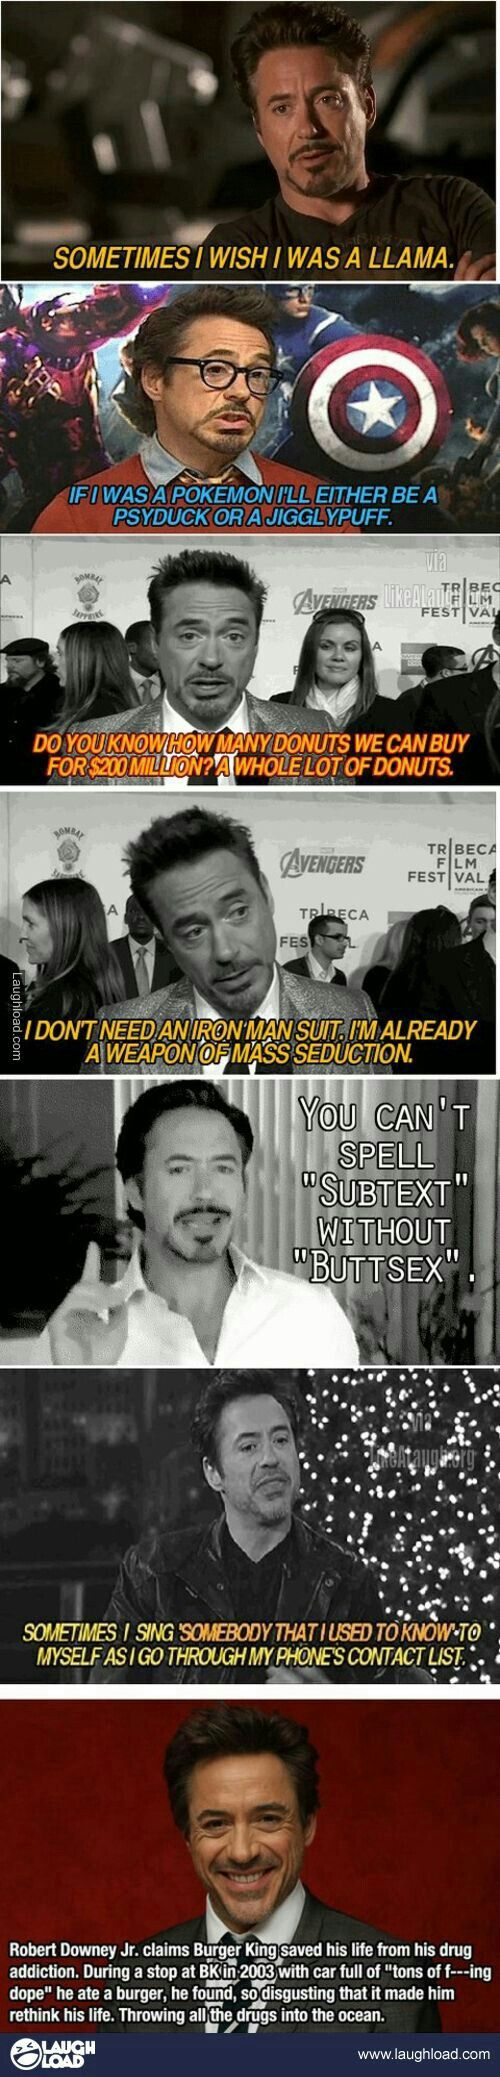 Conclusion: Robert Downey Jr. is awesome.